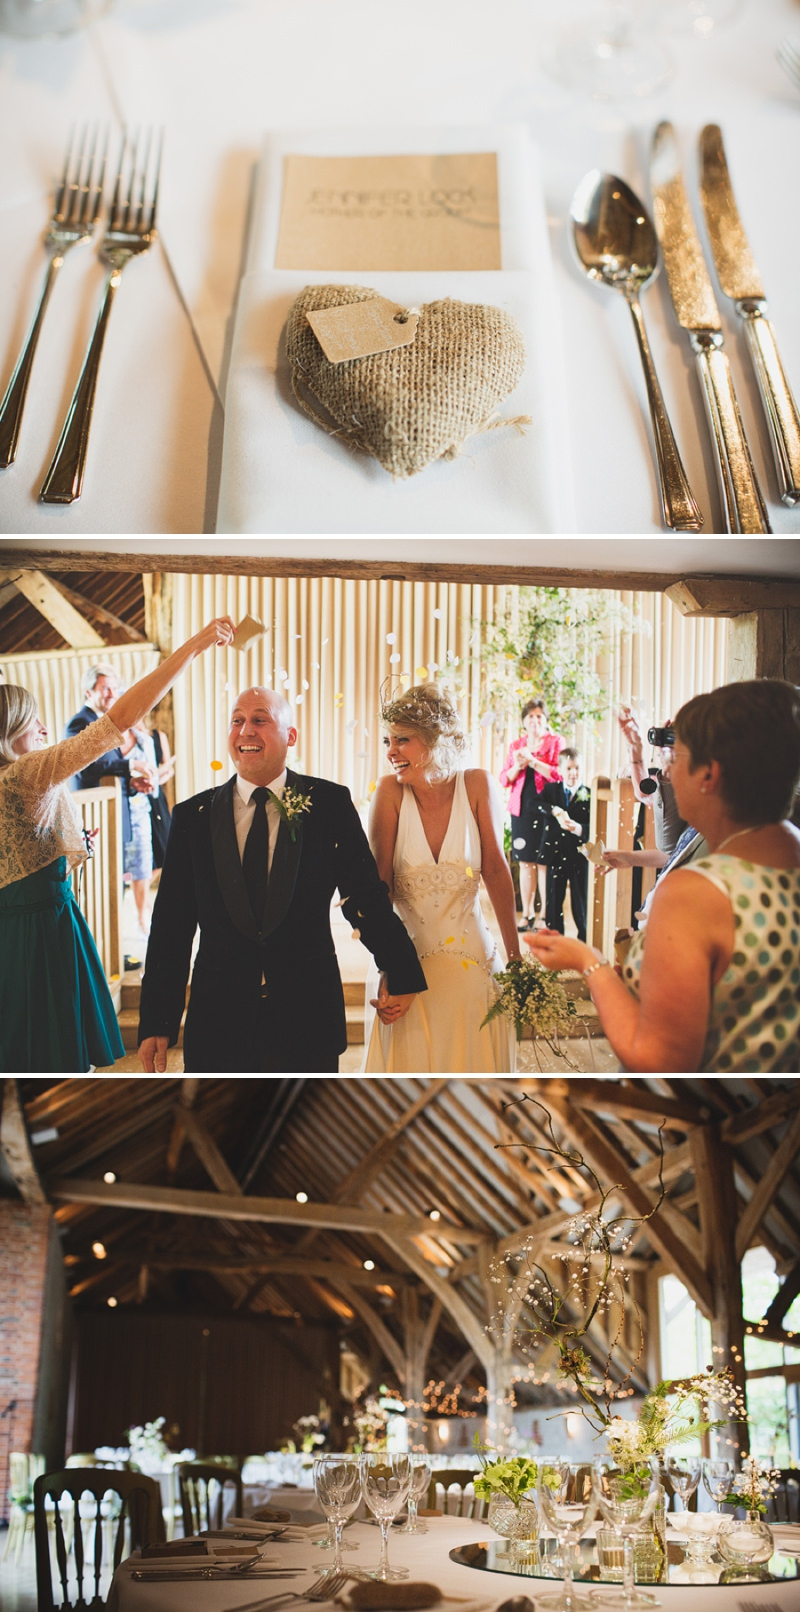 Rustic barn wedding styling with fairy lights